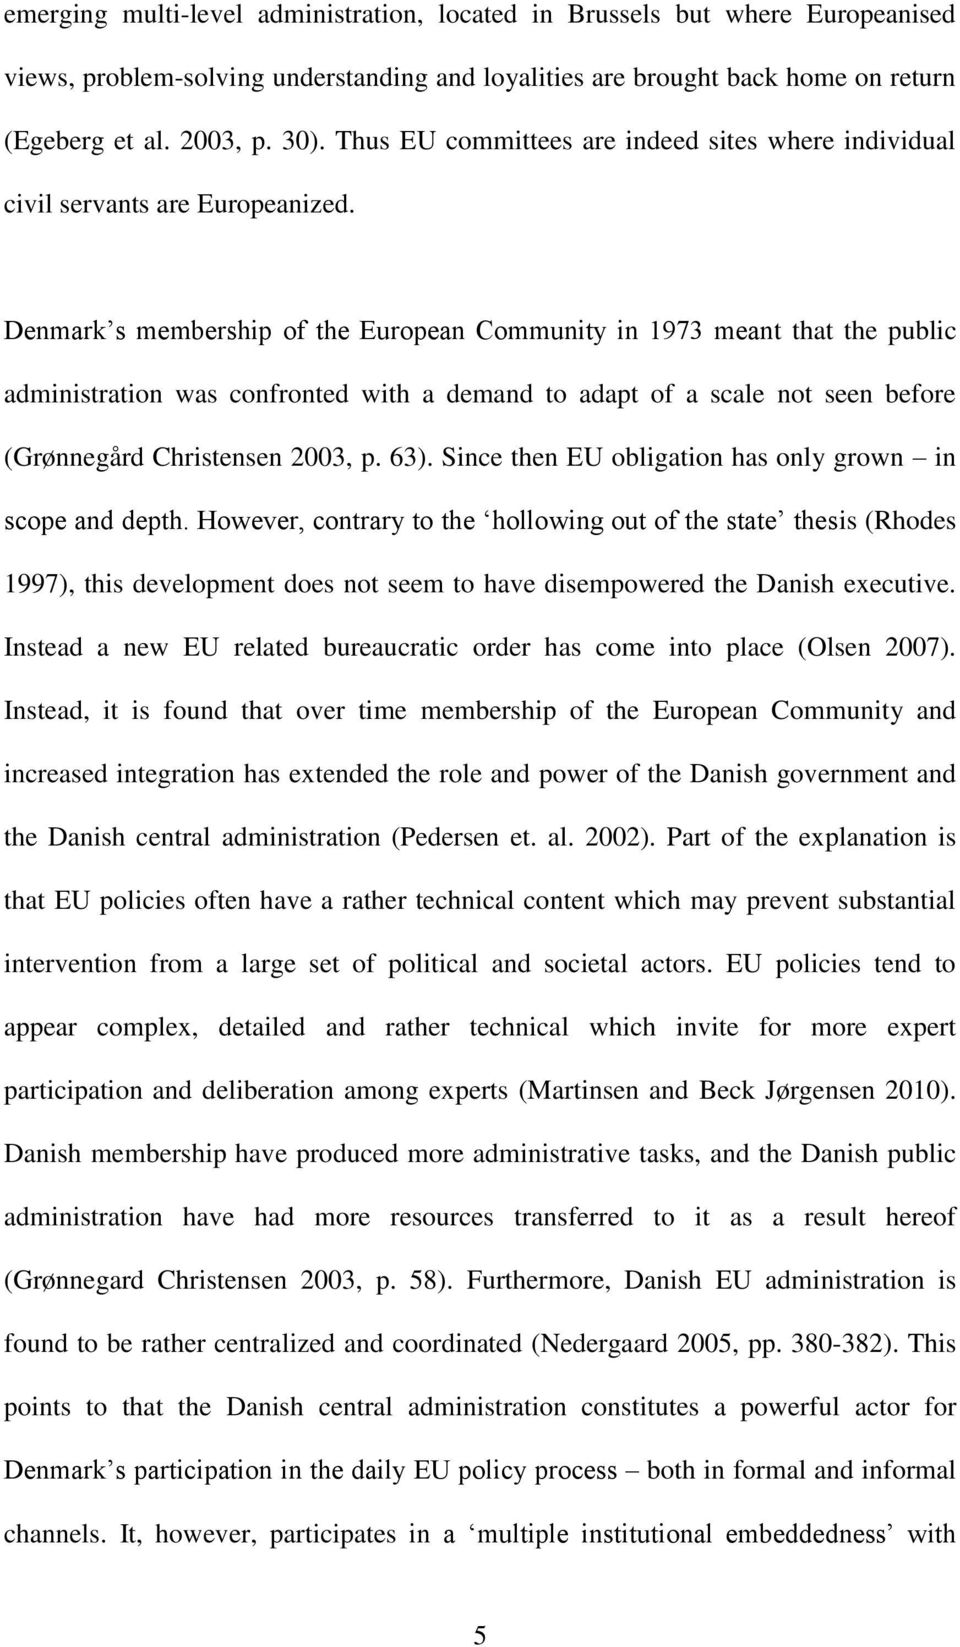 Denmark s membership of the European Community in 1973 meant that the public administration was confronted with a demand to adapt of a scale not seen before (Grønnegård Christensen 2003, p. 63).